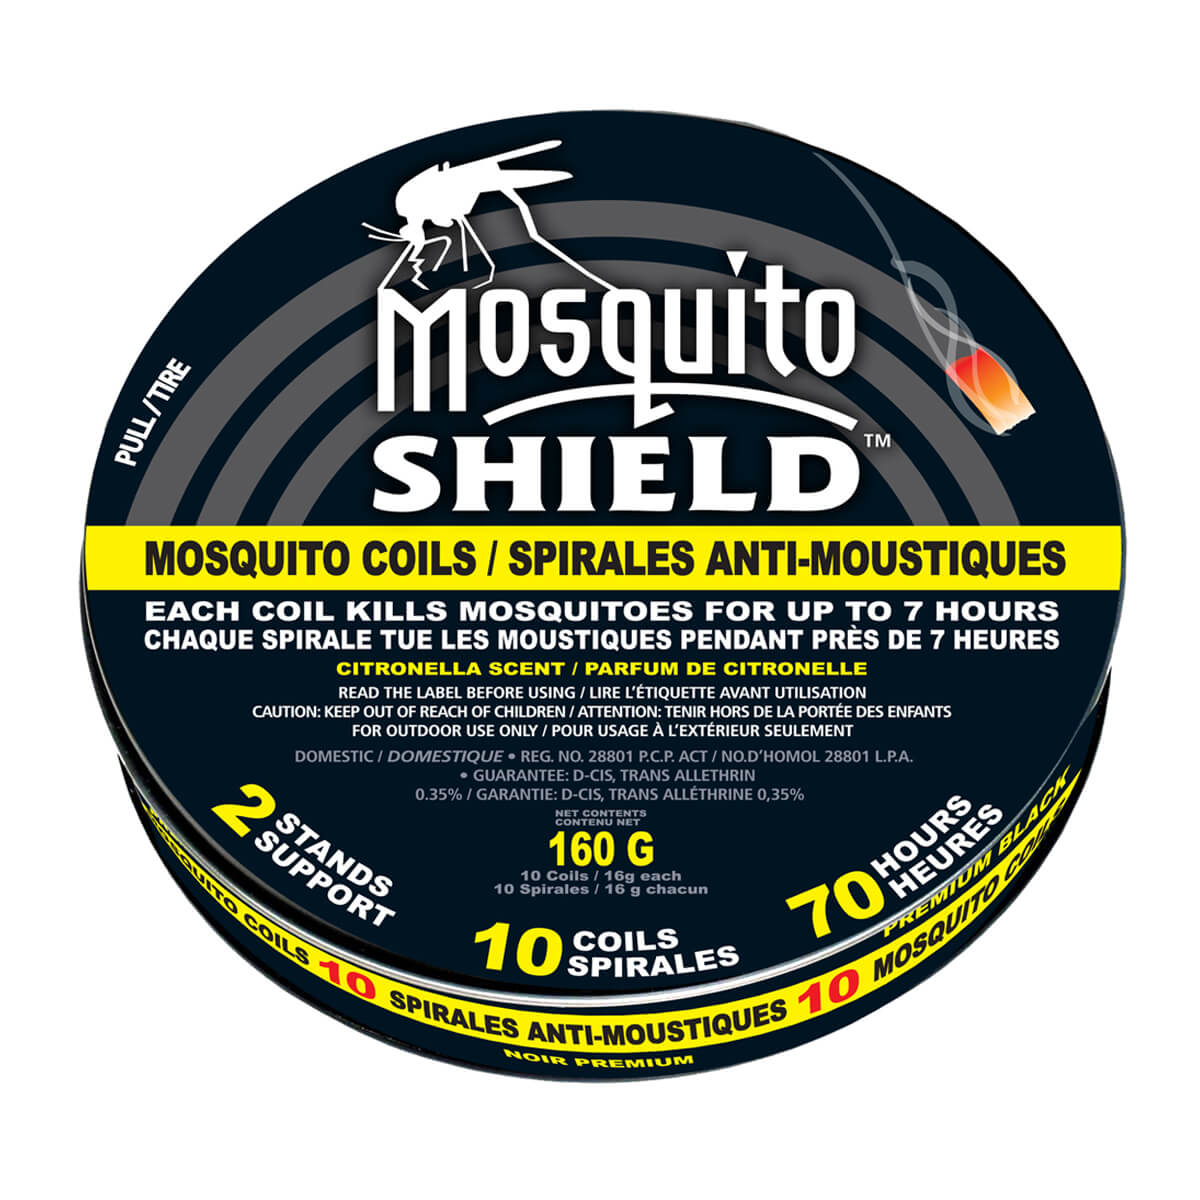 Mosquito Shield Mosquito Coils 160 g